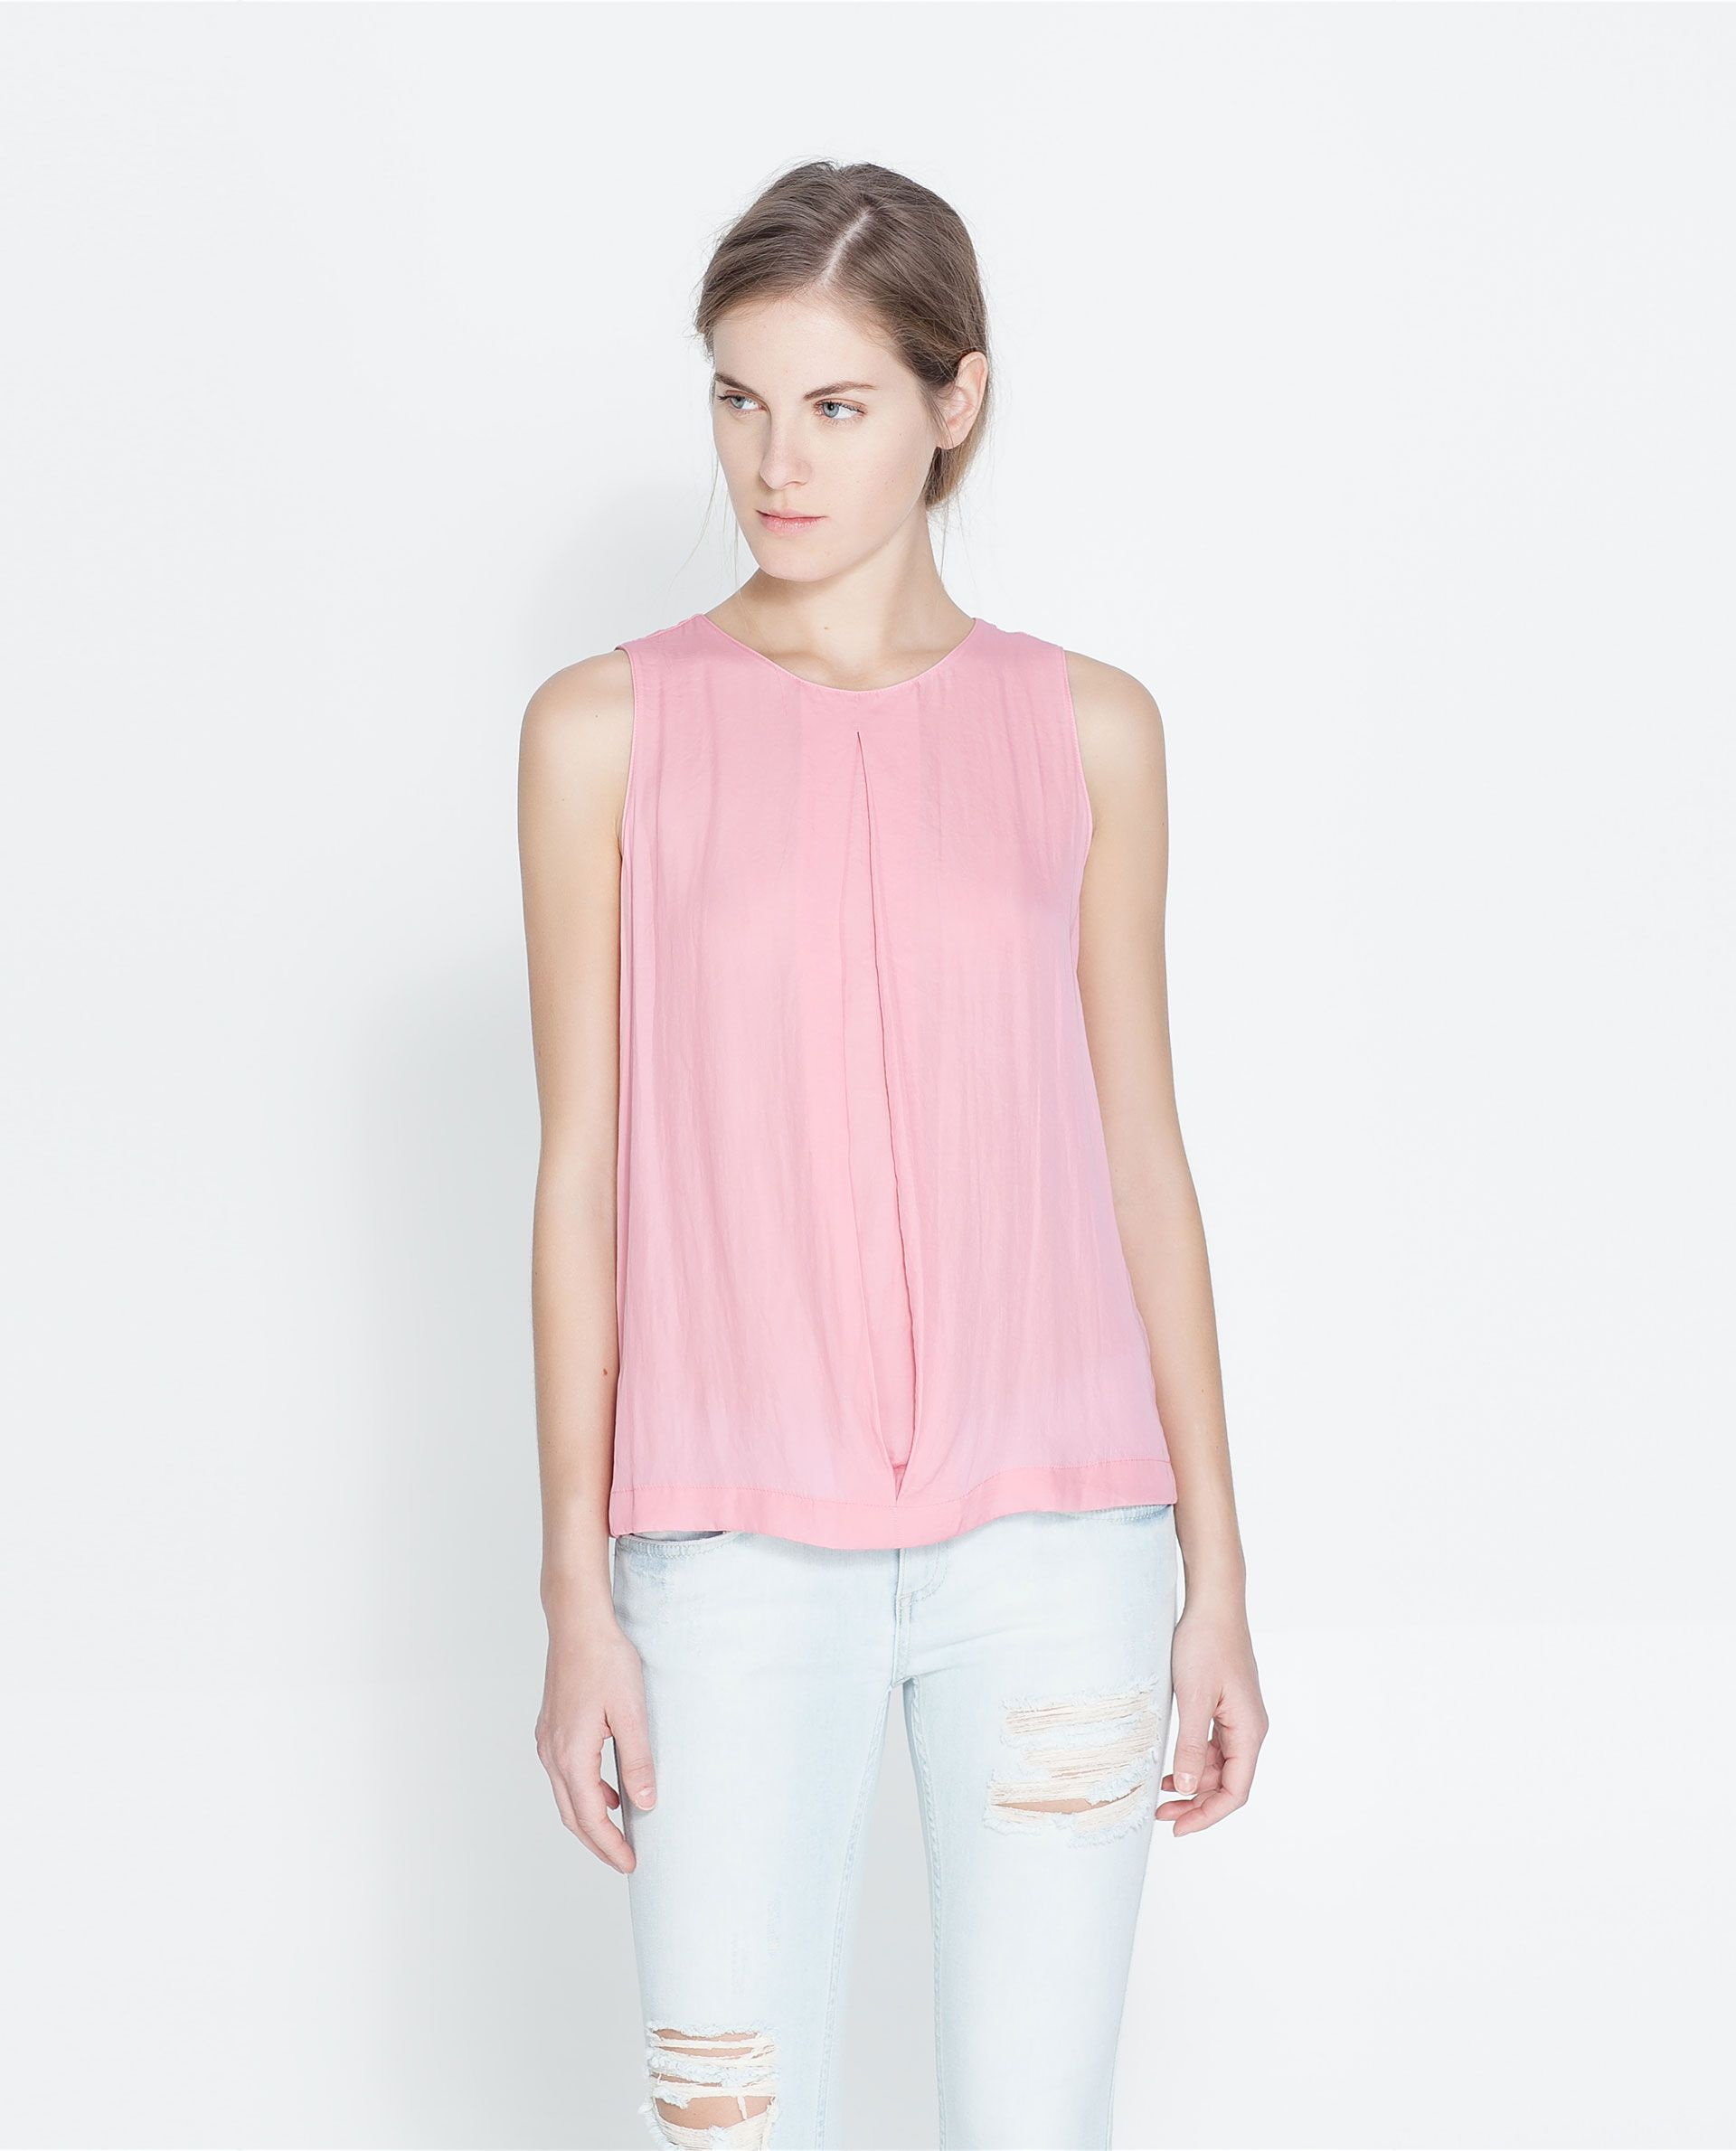 047bc40145d75 ZARA - WOMAN - BLOUSE WITH PLEAT DETAIL